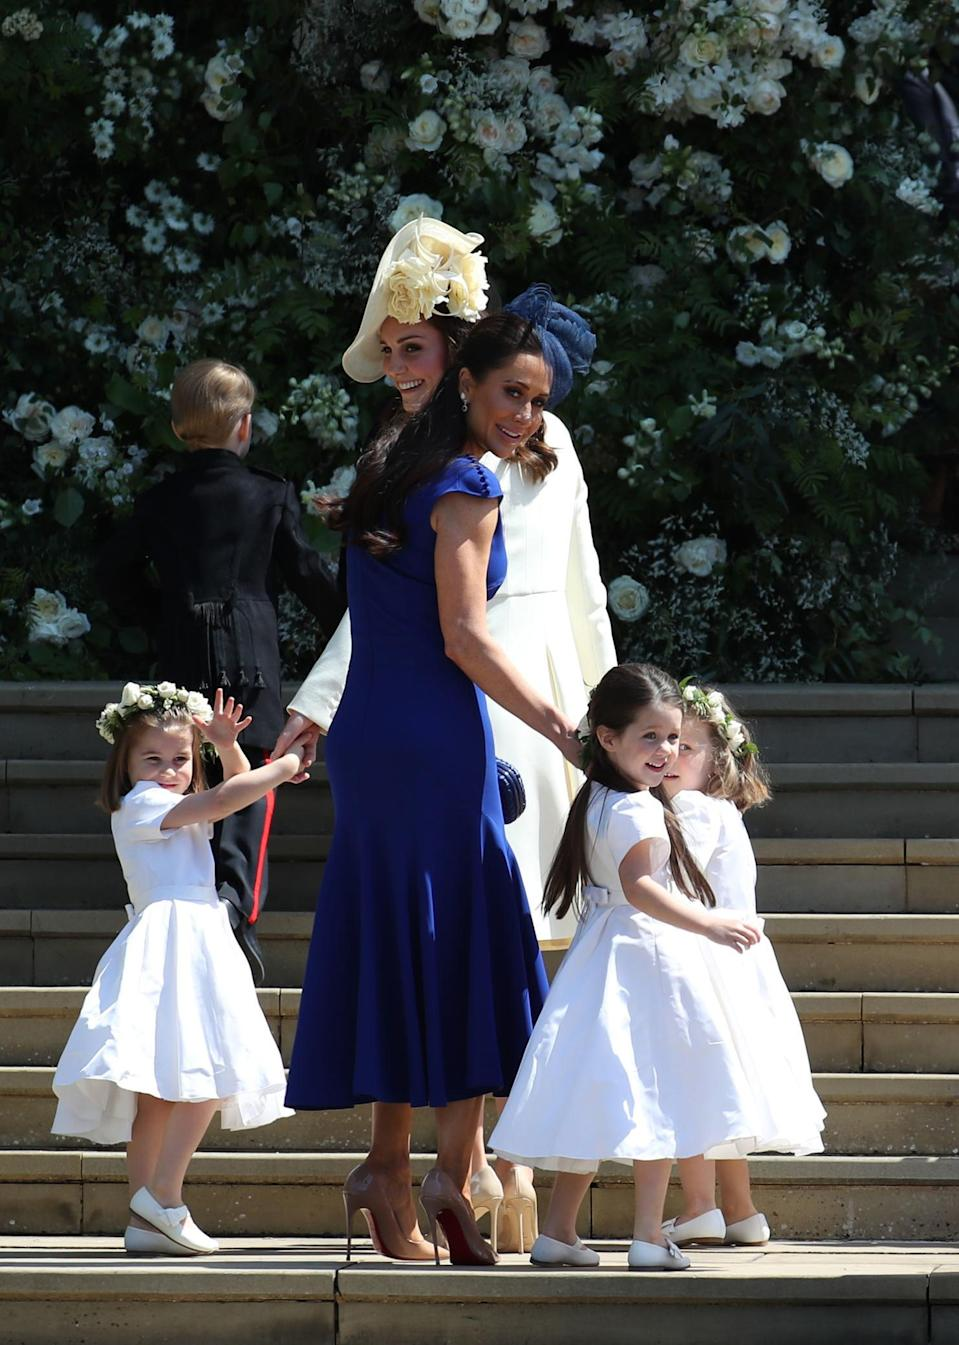 Jessica Mulroney at the royal wedding on May 19th